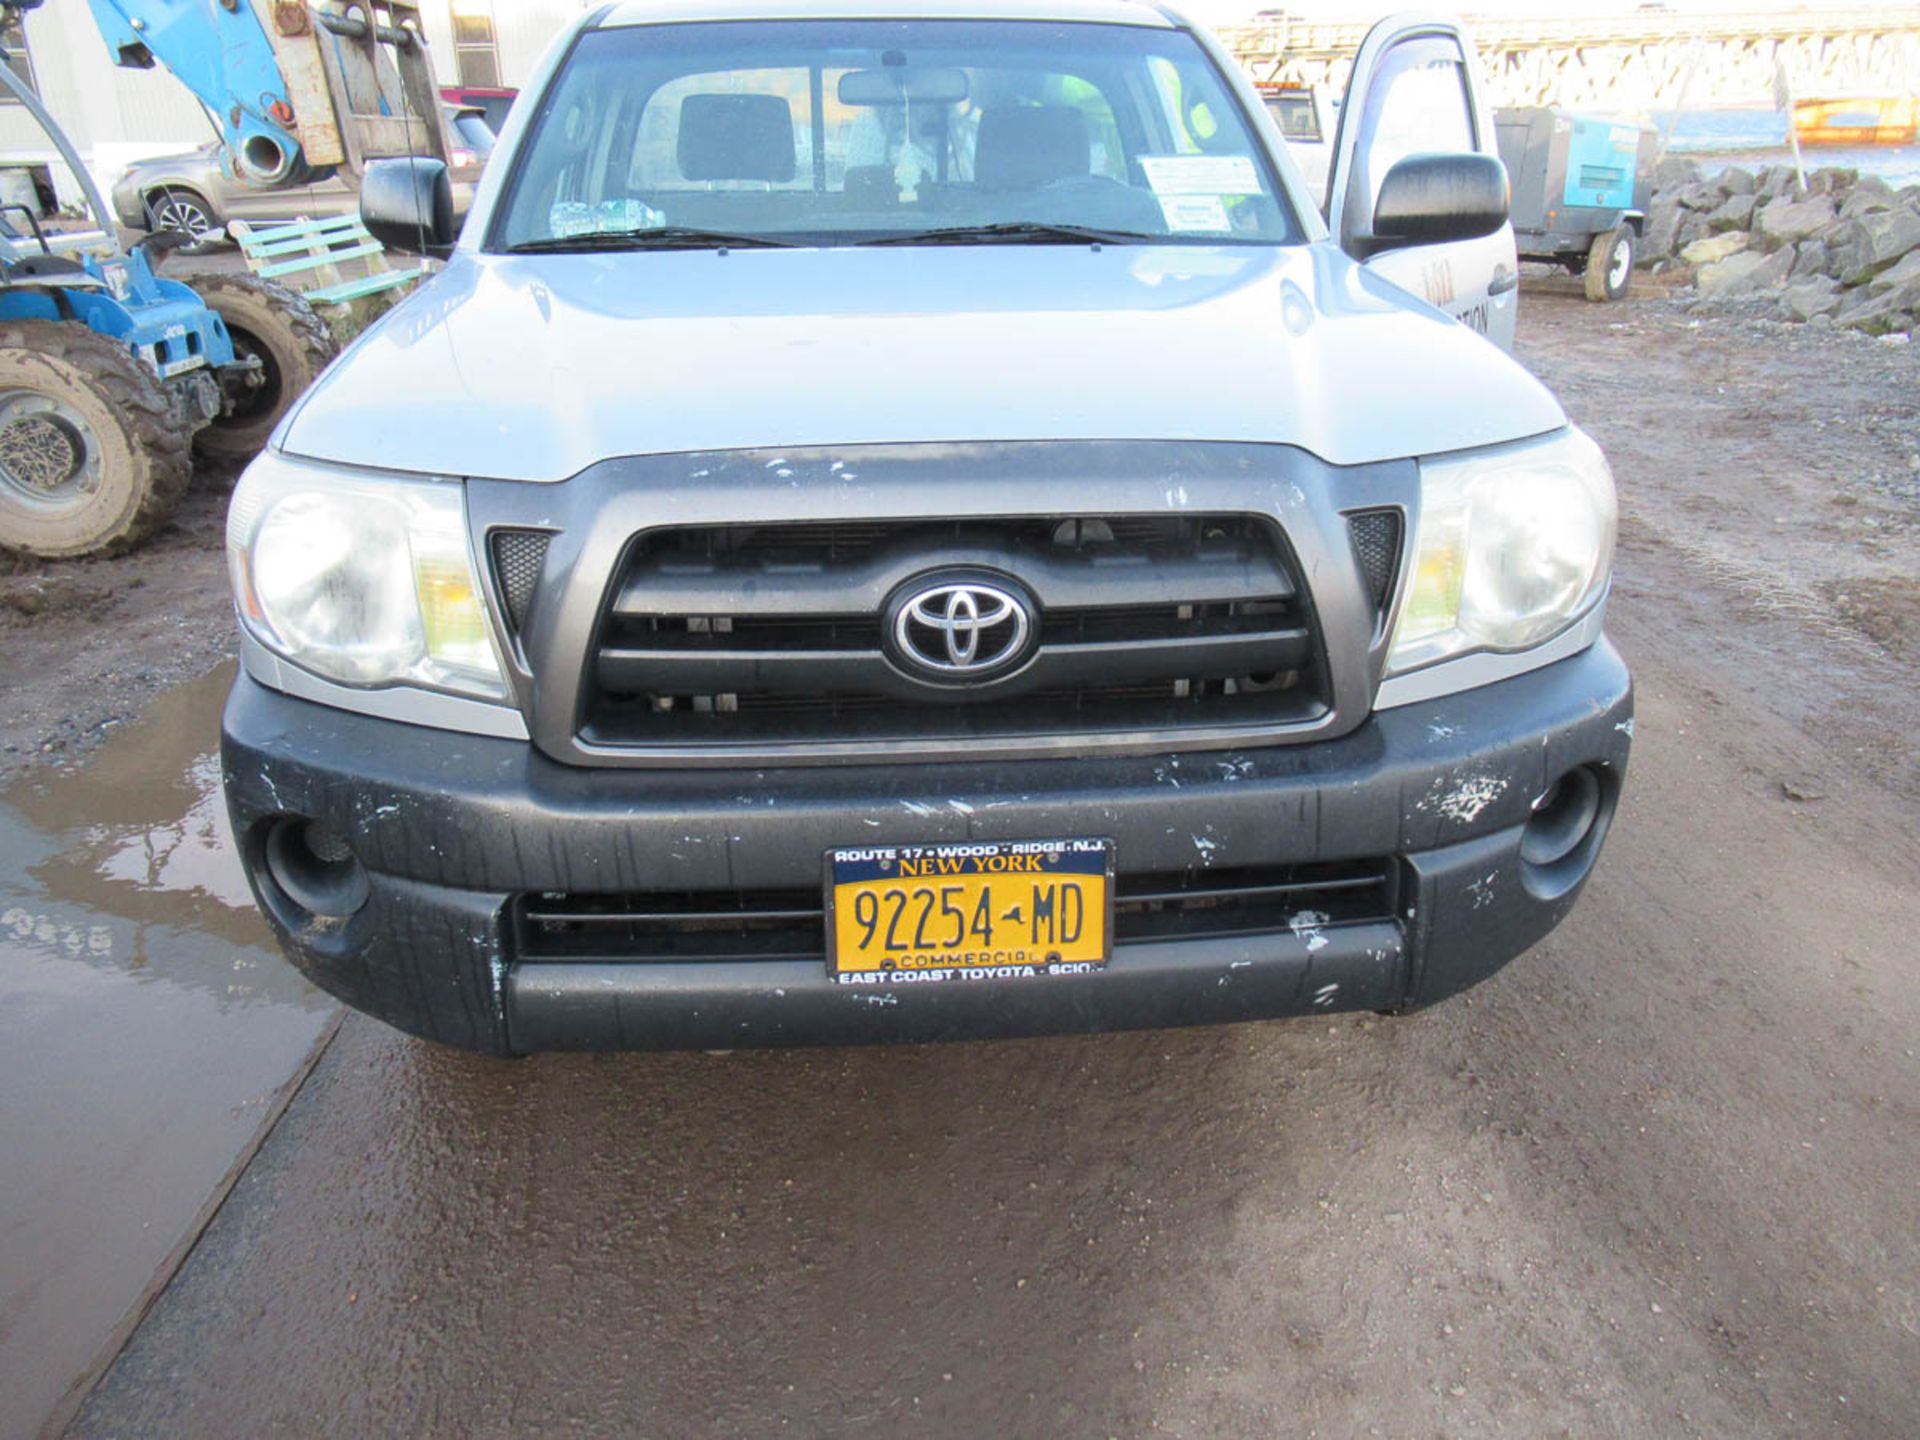 2008 TOYOTA TACOMA PICKUP TRUCK, AUTOMATIC, WITH APPROXIMATELY 105,732 MILES, VIN: 5TENX22N382504186 - Image 7 of 12